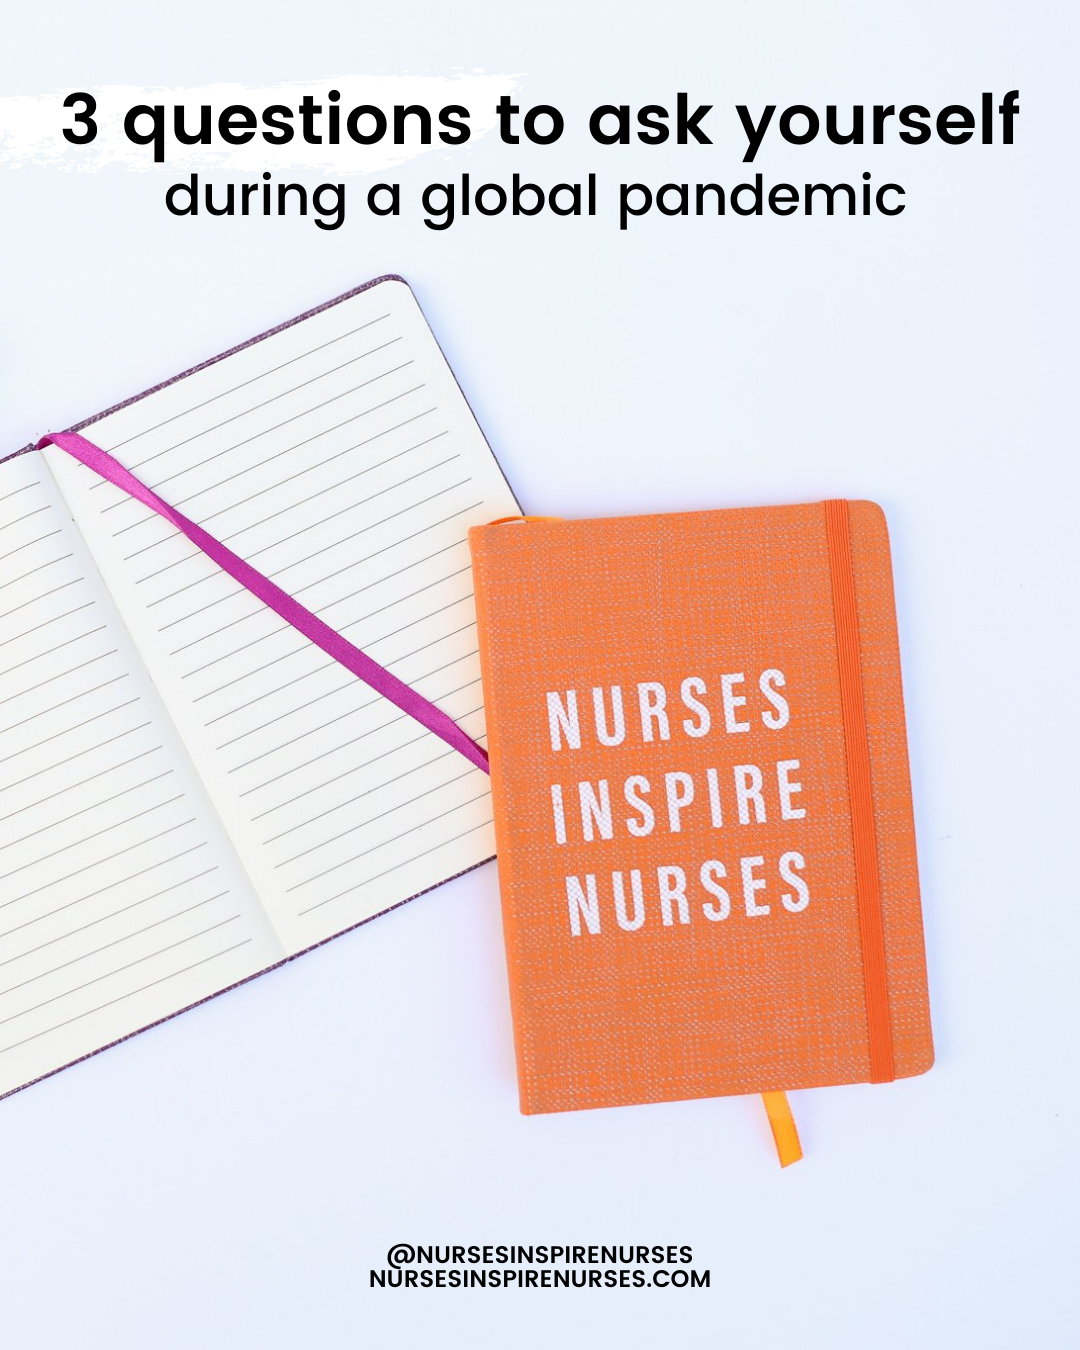 3 Questions To Ask Yourself During a Global Pandemic